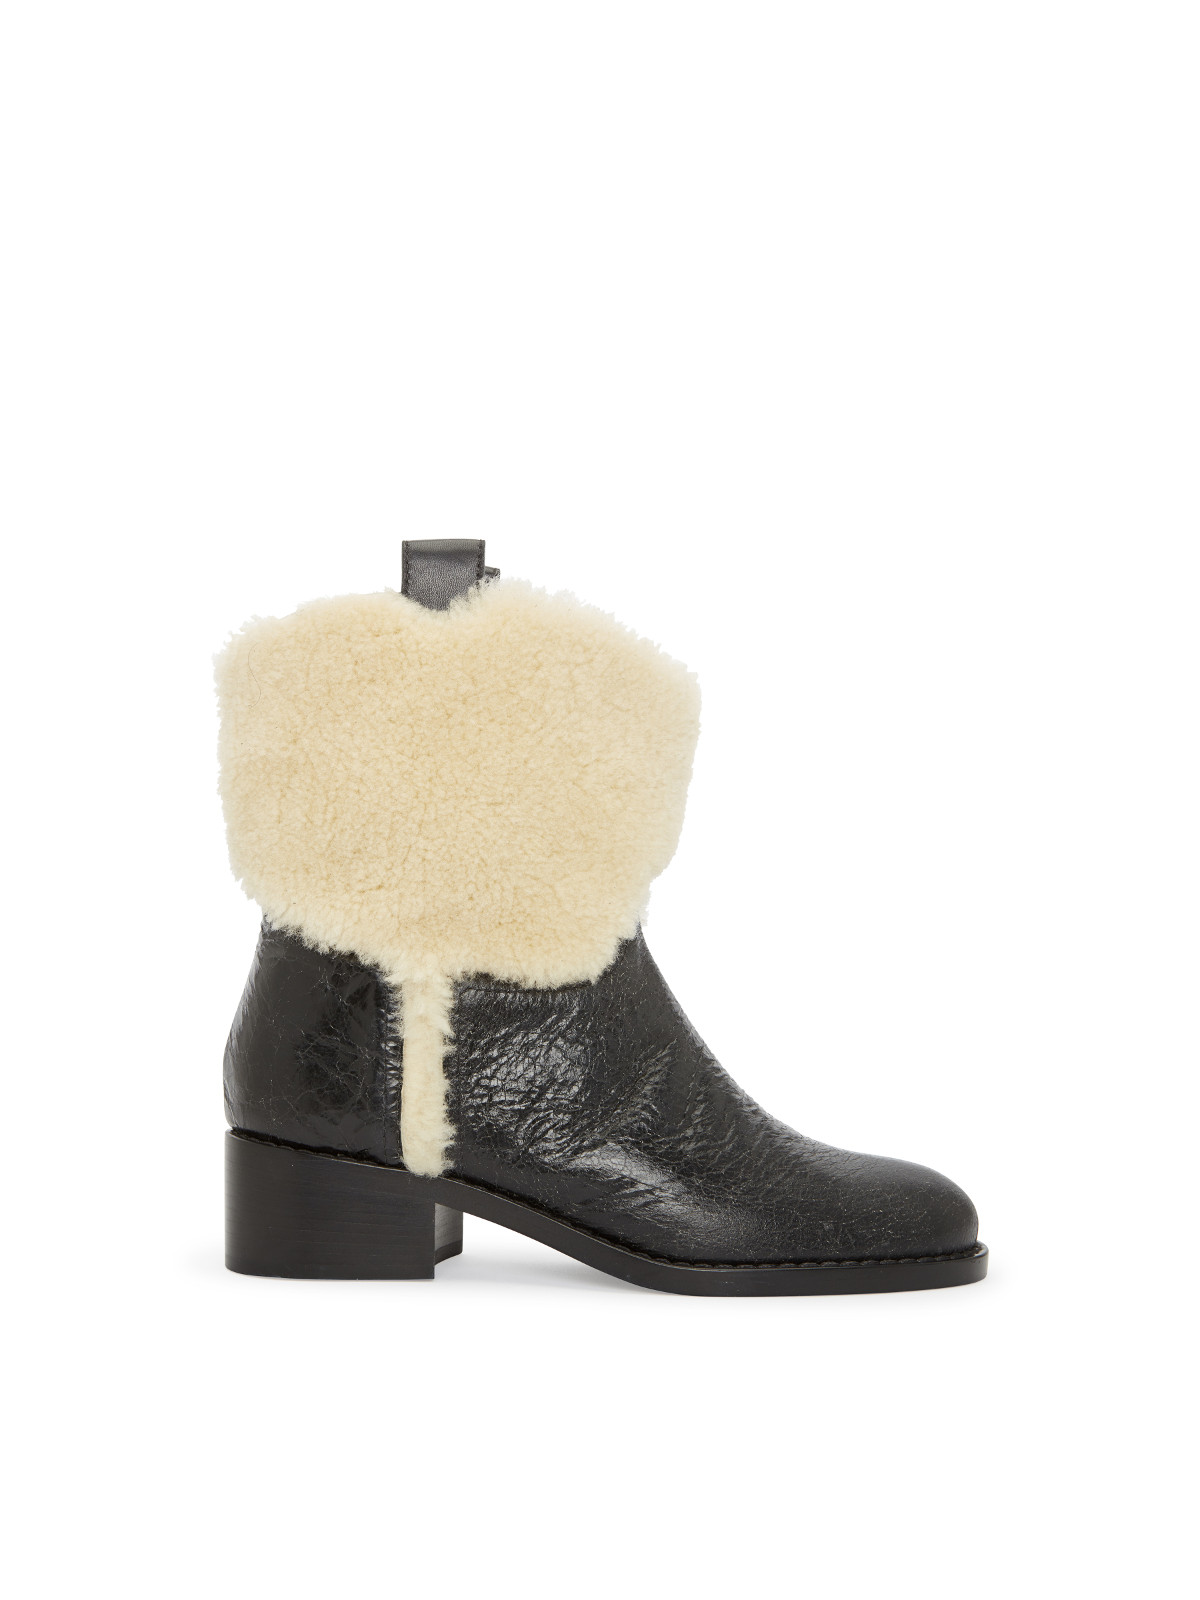 39PF19_Tebaldo_Cracked Shearling Lamb_Black Cream_5629.jpg